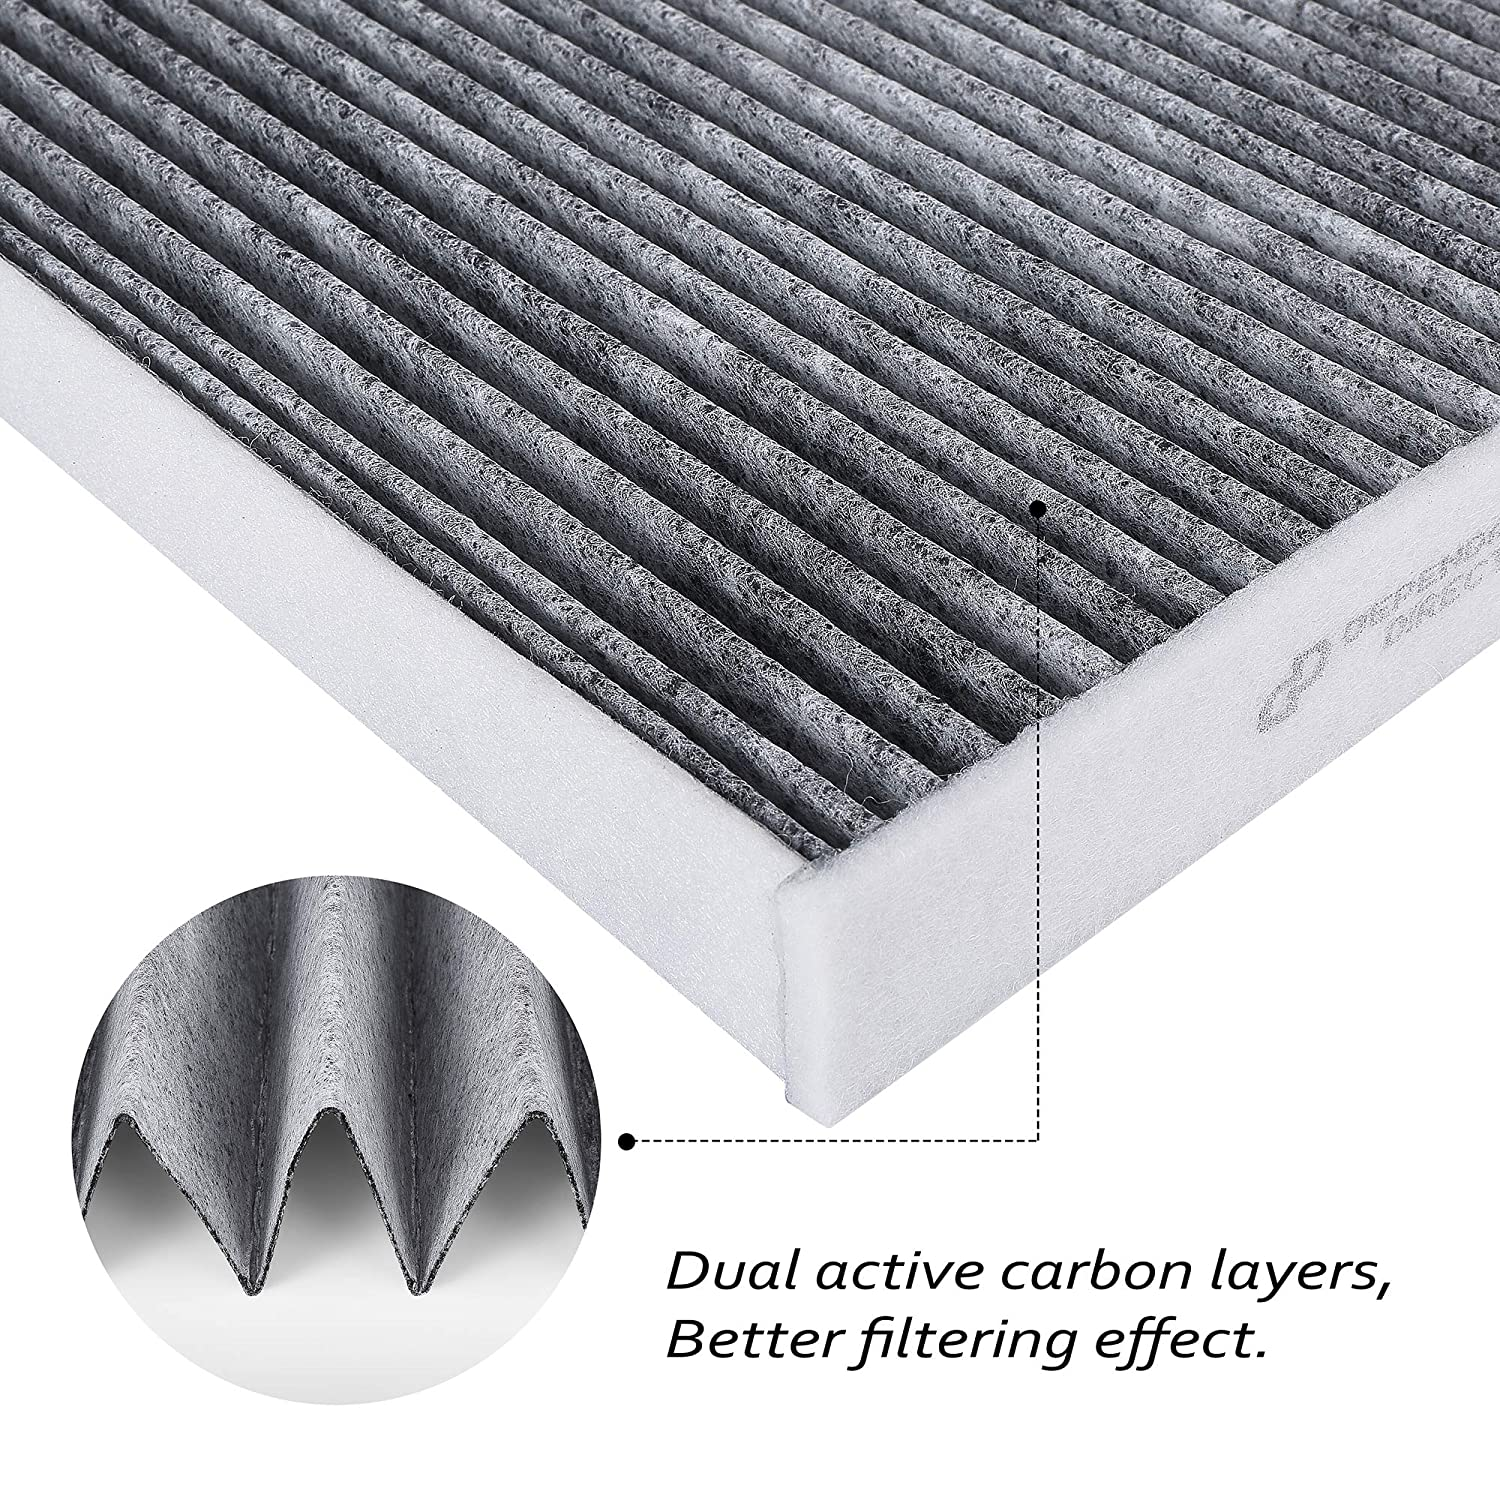 CF11809 Premium Cabin Air Filter with Activated Carbon Chevy Silverado SEE FITMENT LIST GMC Sierra OEM# 23281440 2014-2018 Suburban Replacement for Cadillac Escalade Tahoe 22808780